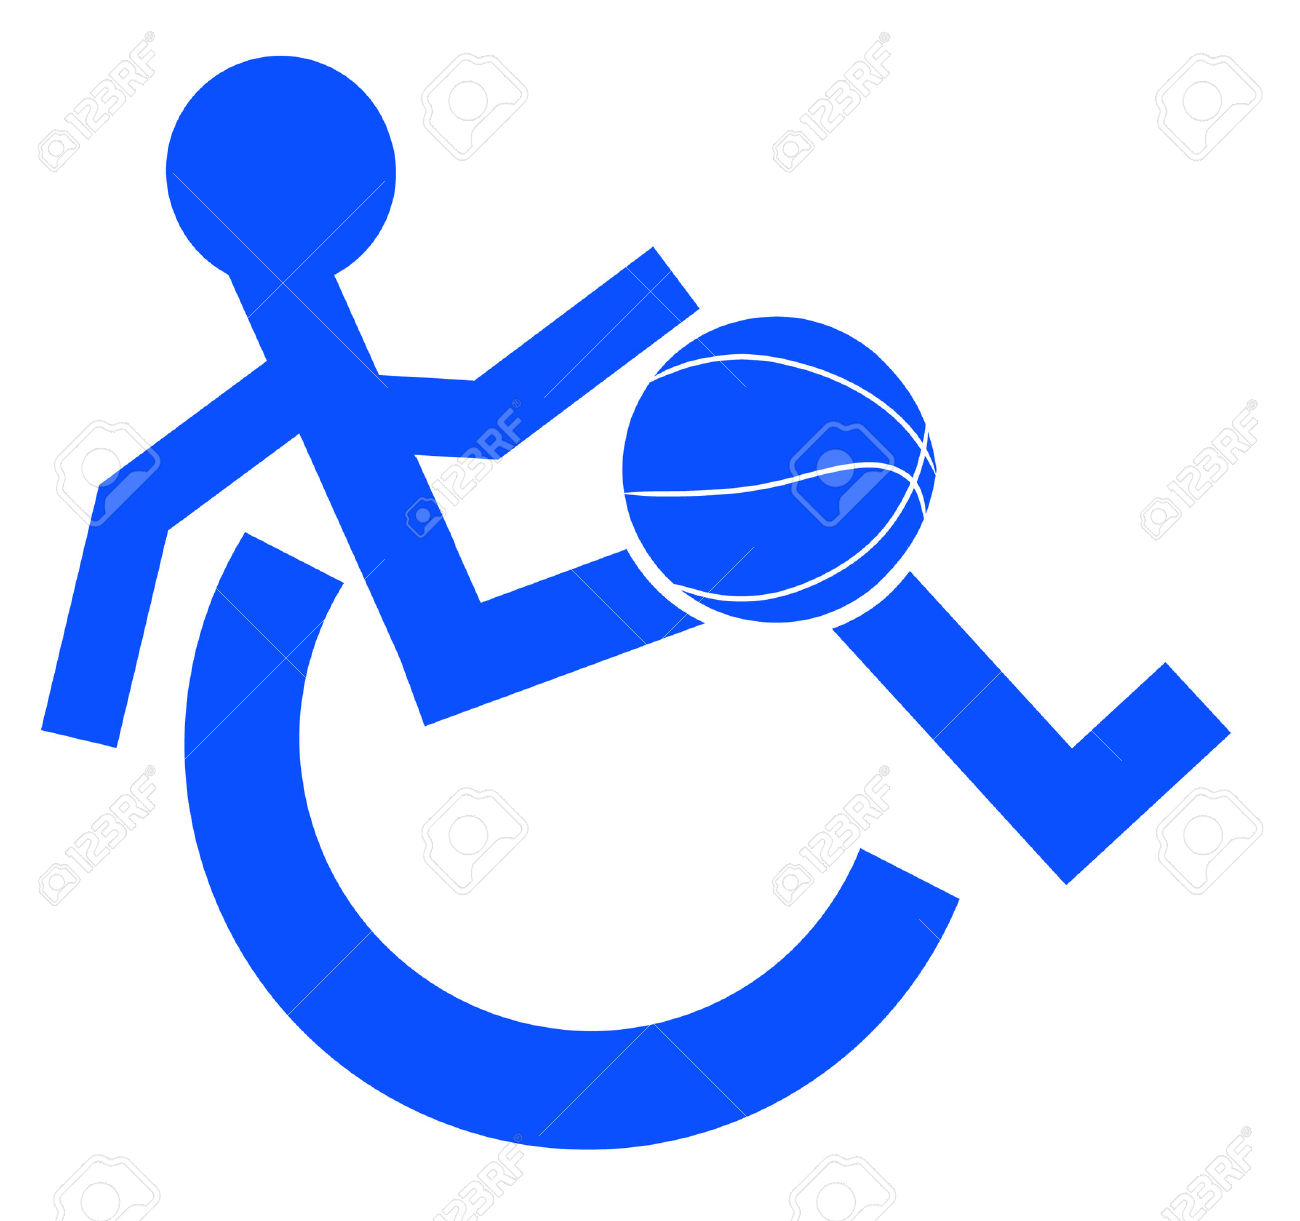 Logo Or Symbol For Wheelchair Accessible Sports Or Activities.